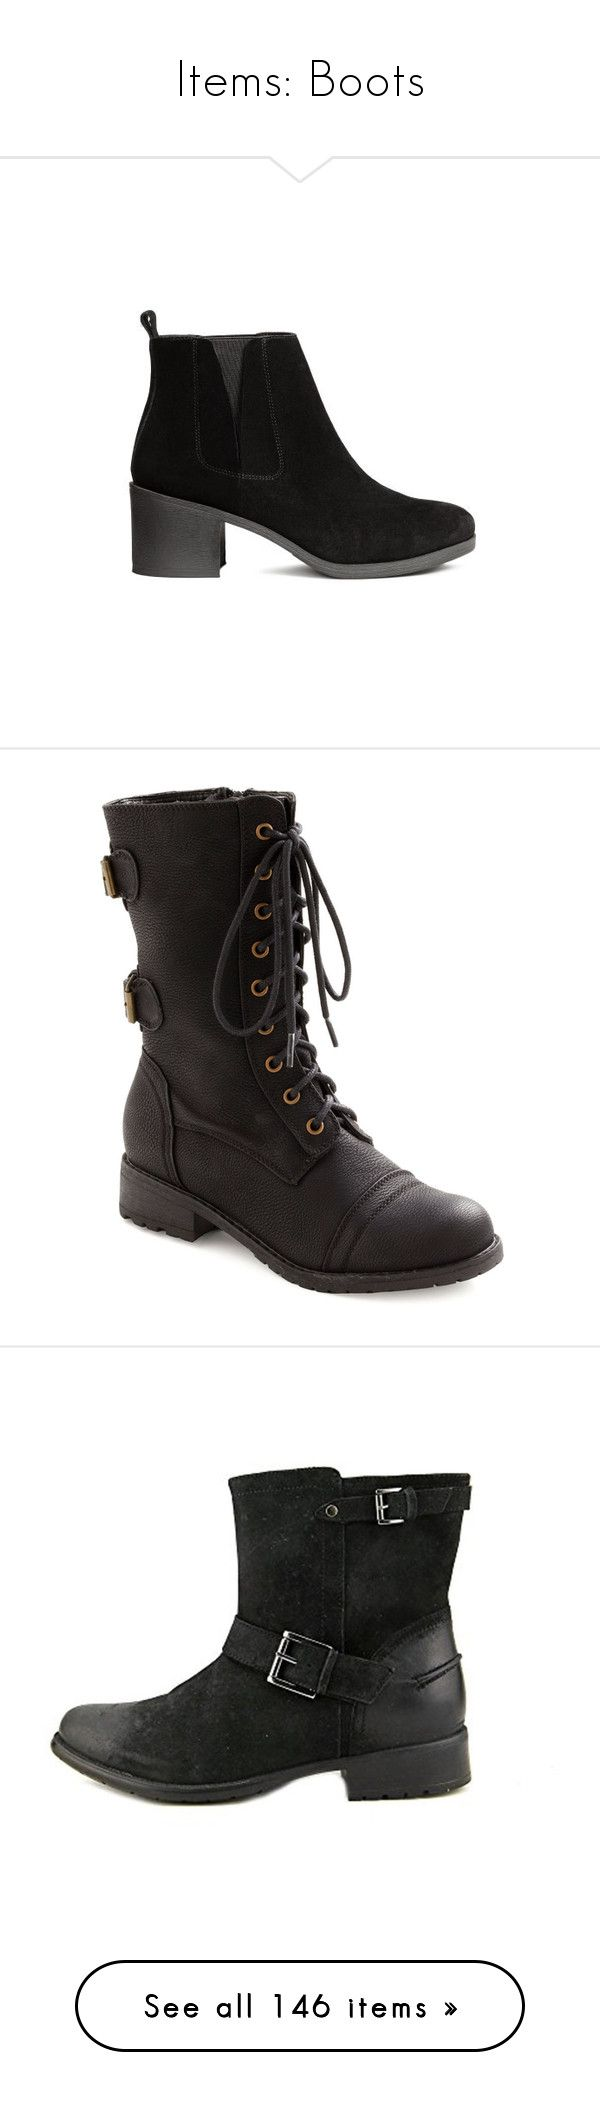 """Items: Boots"" by jess-nichole ❤ liked on Polyvore featuring shoes, boots, h&m shoes, h&m boots, combat boots, black, flat boots, boot - bootie, black lace up boots and military boots"